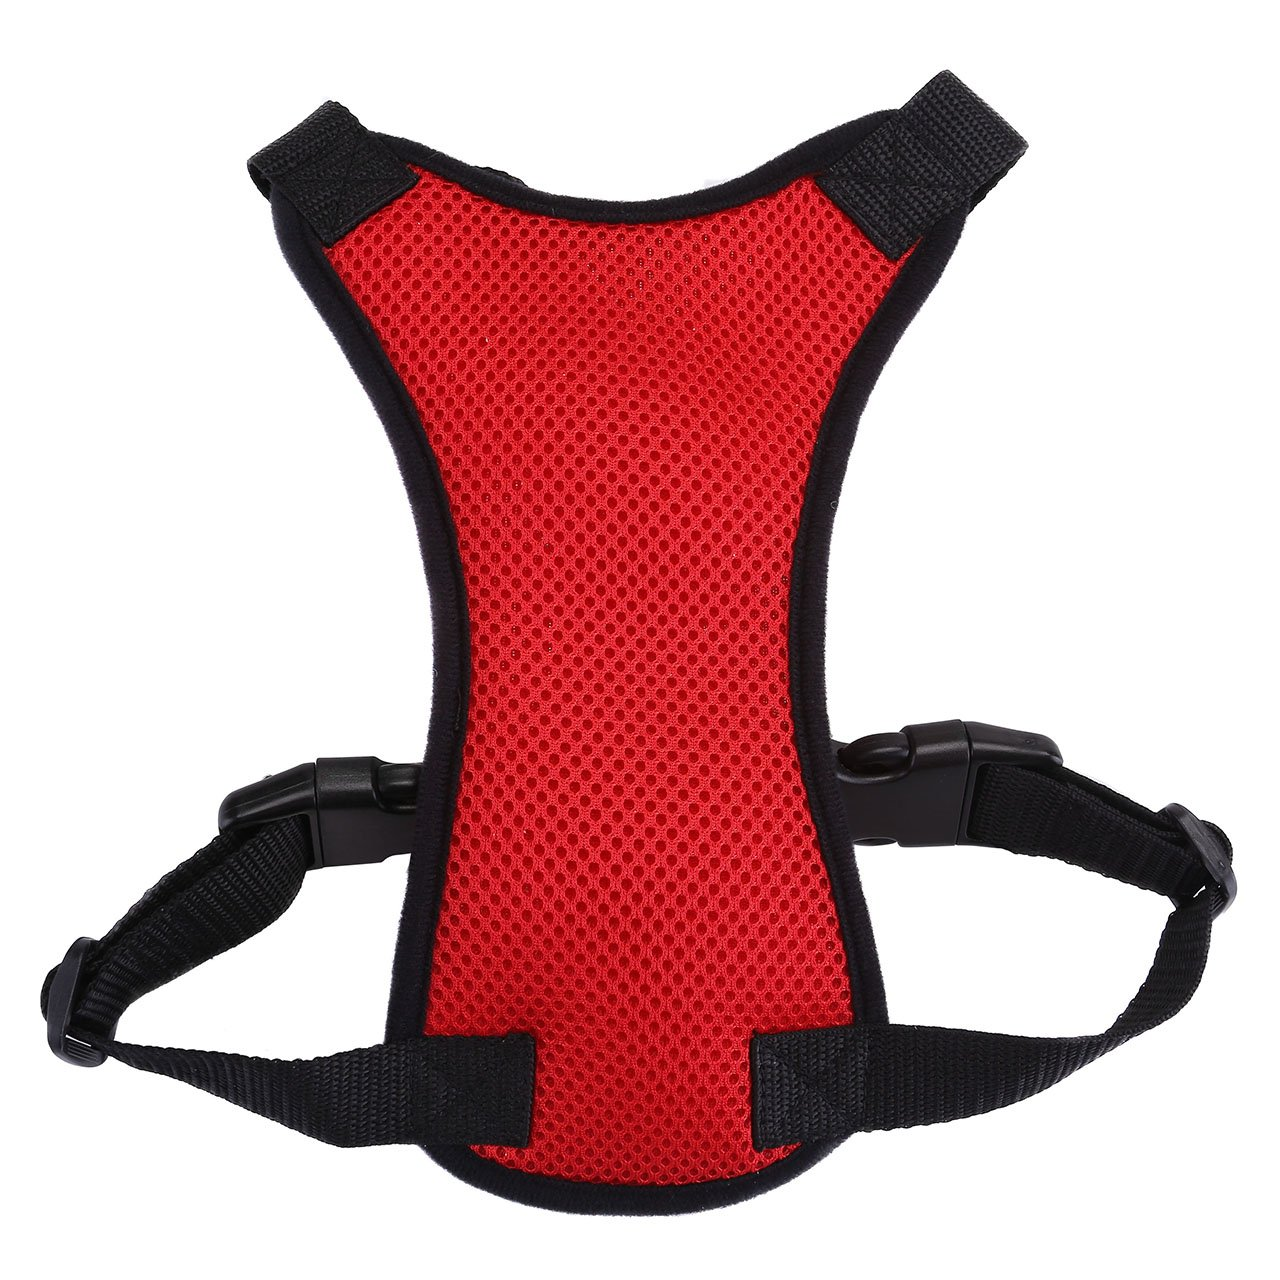 GraceMe Pet Dog Vest Harness Car Soft Mesh Front Range No Pull Harness Adjustable for Rabbit Cat Chiwawa Small Medium Large